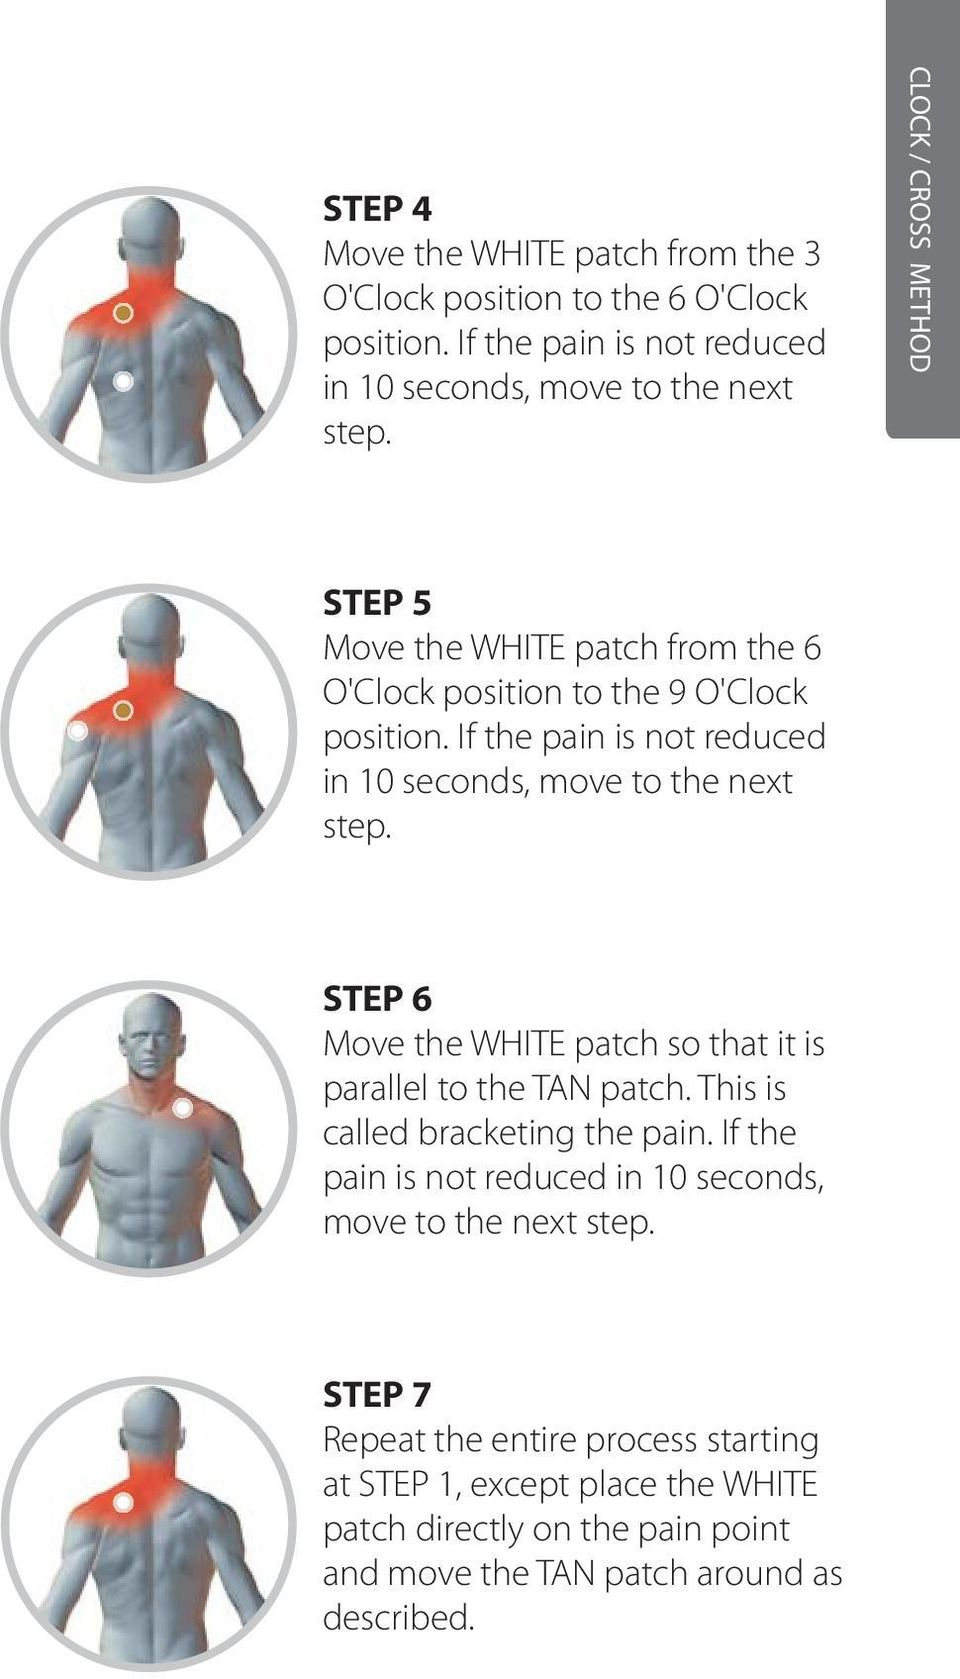 If the pain is not reduced in 10 seconds, move to the next step. STEP 6 Move the WHITE patch so that it is parallel to the TAN patch.